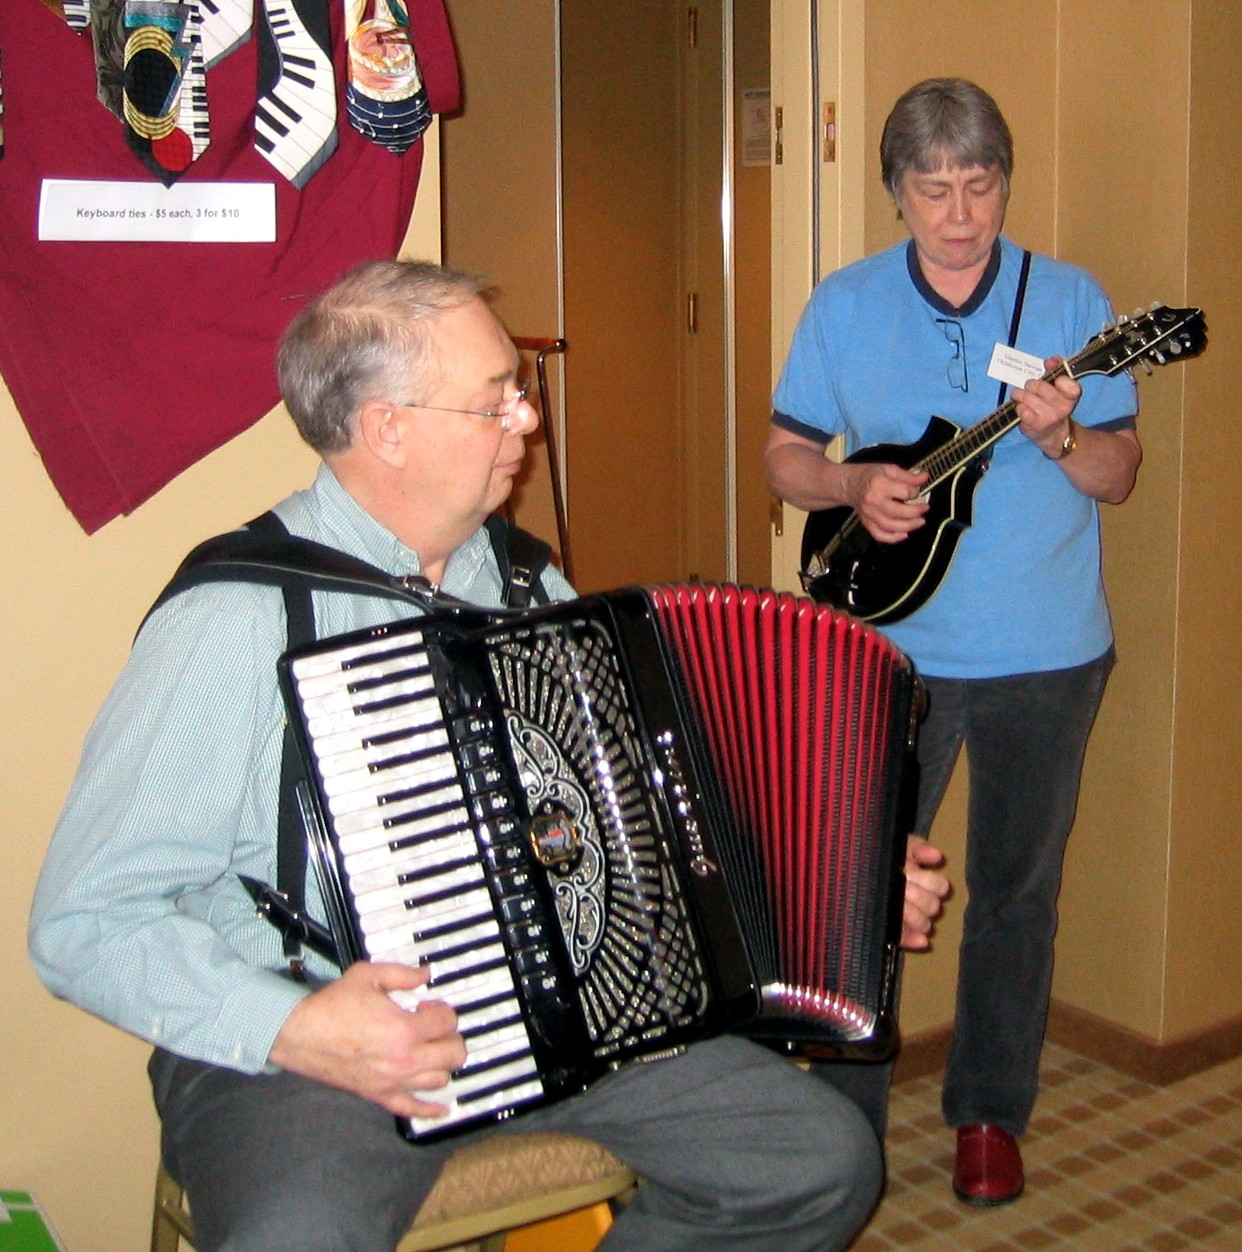 Dale and Martha jam at the 2005 NAA convention